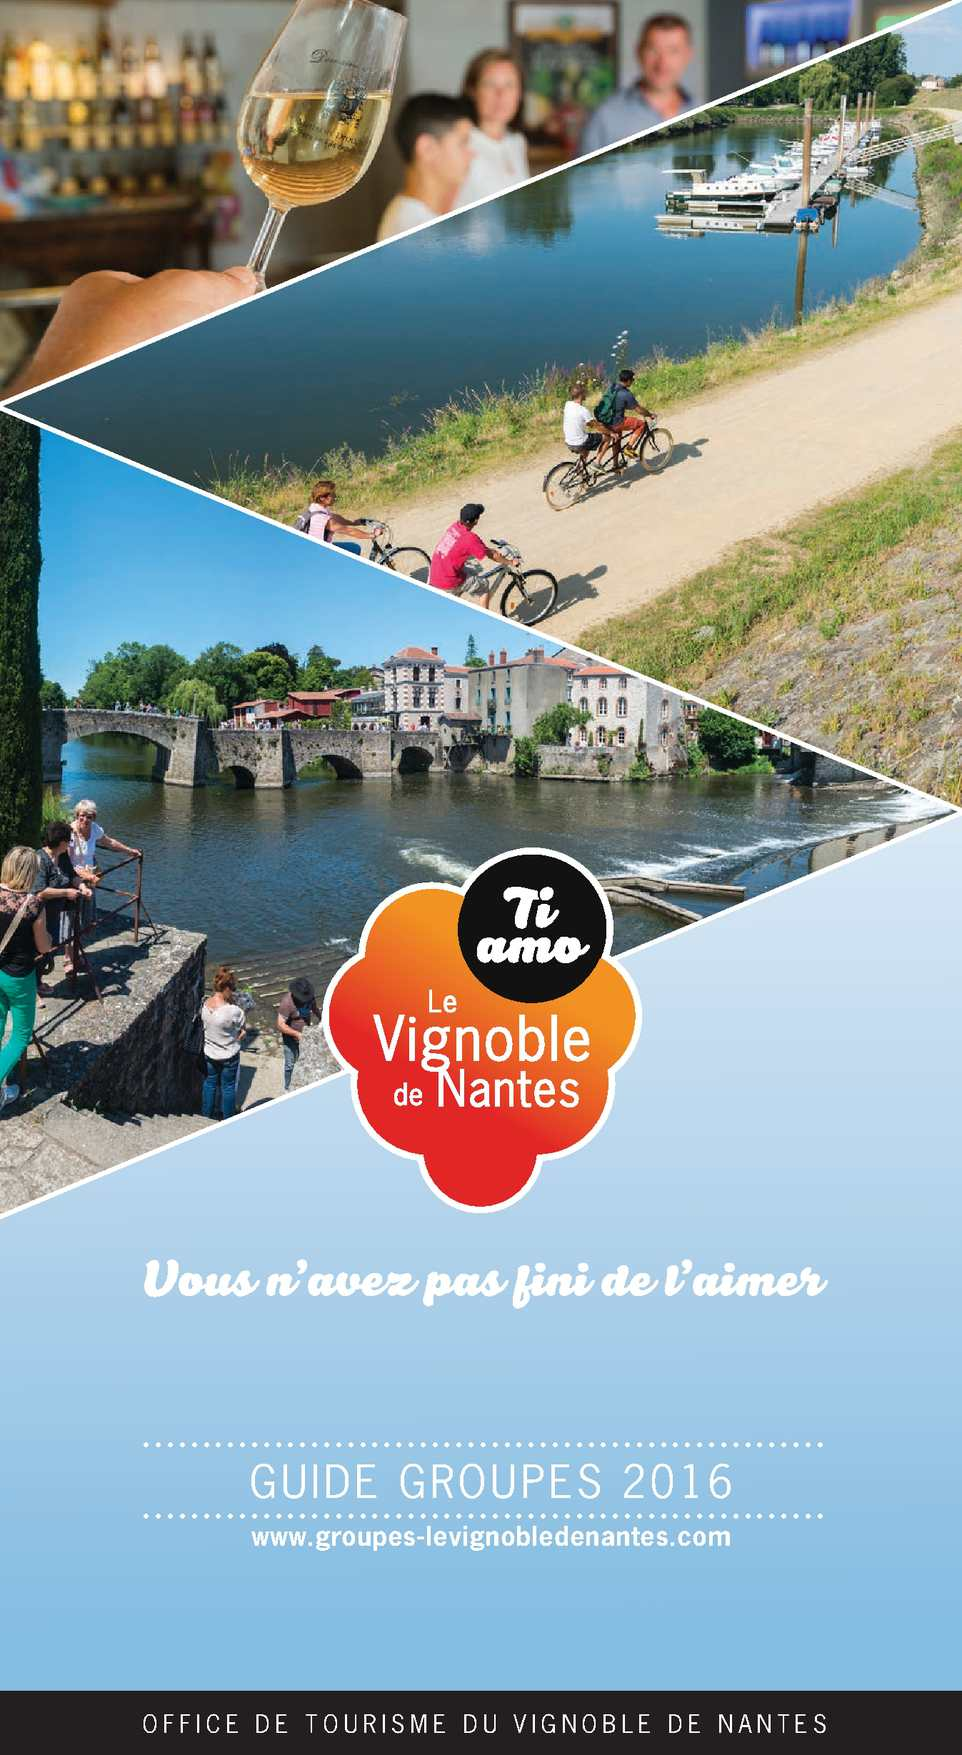 Calam o guide groupe 2016 office tourisme vignoble nantes - Office du tourisme nantes ...